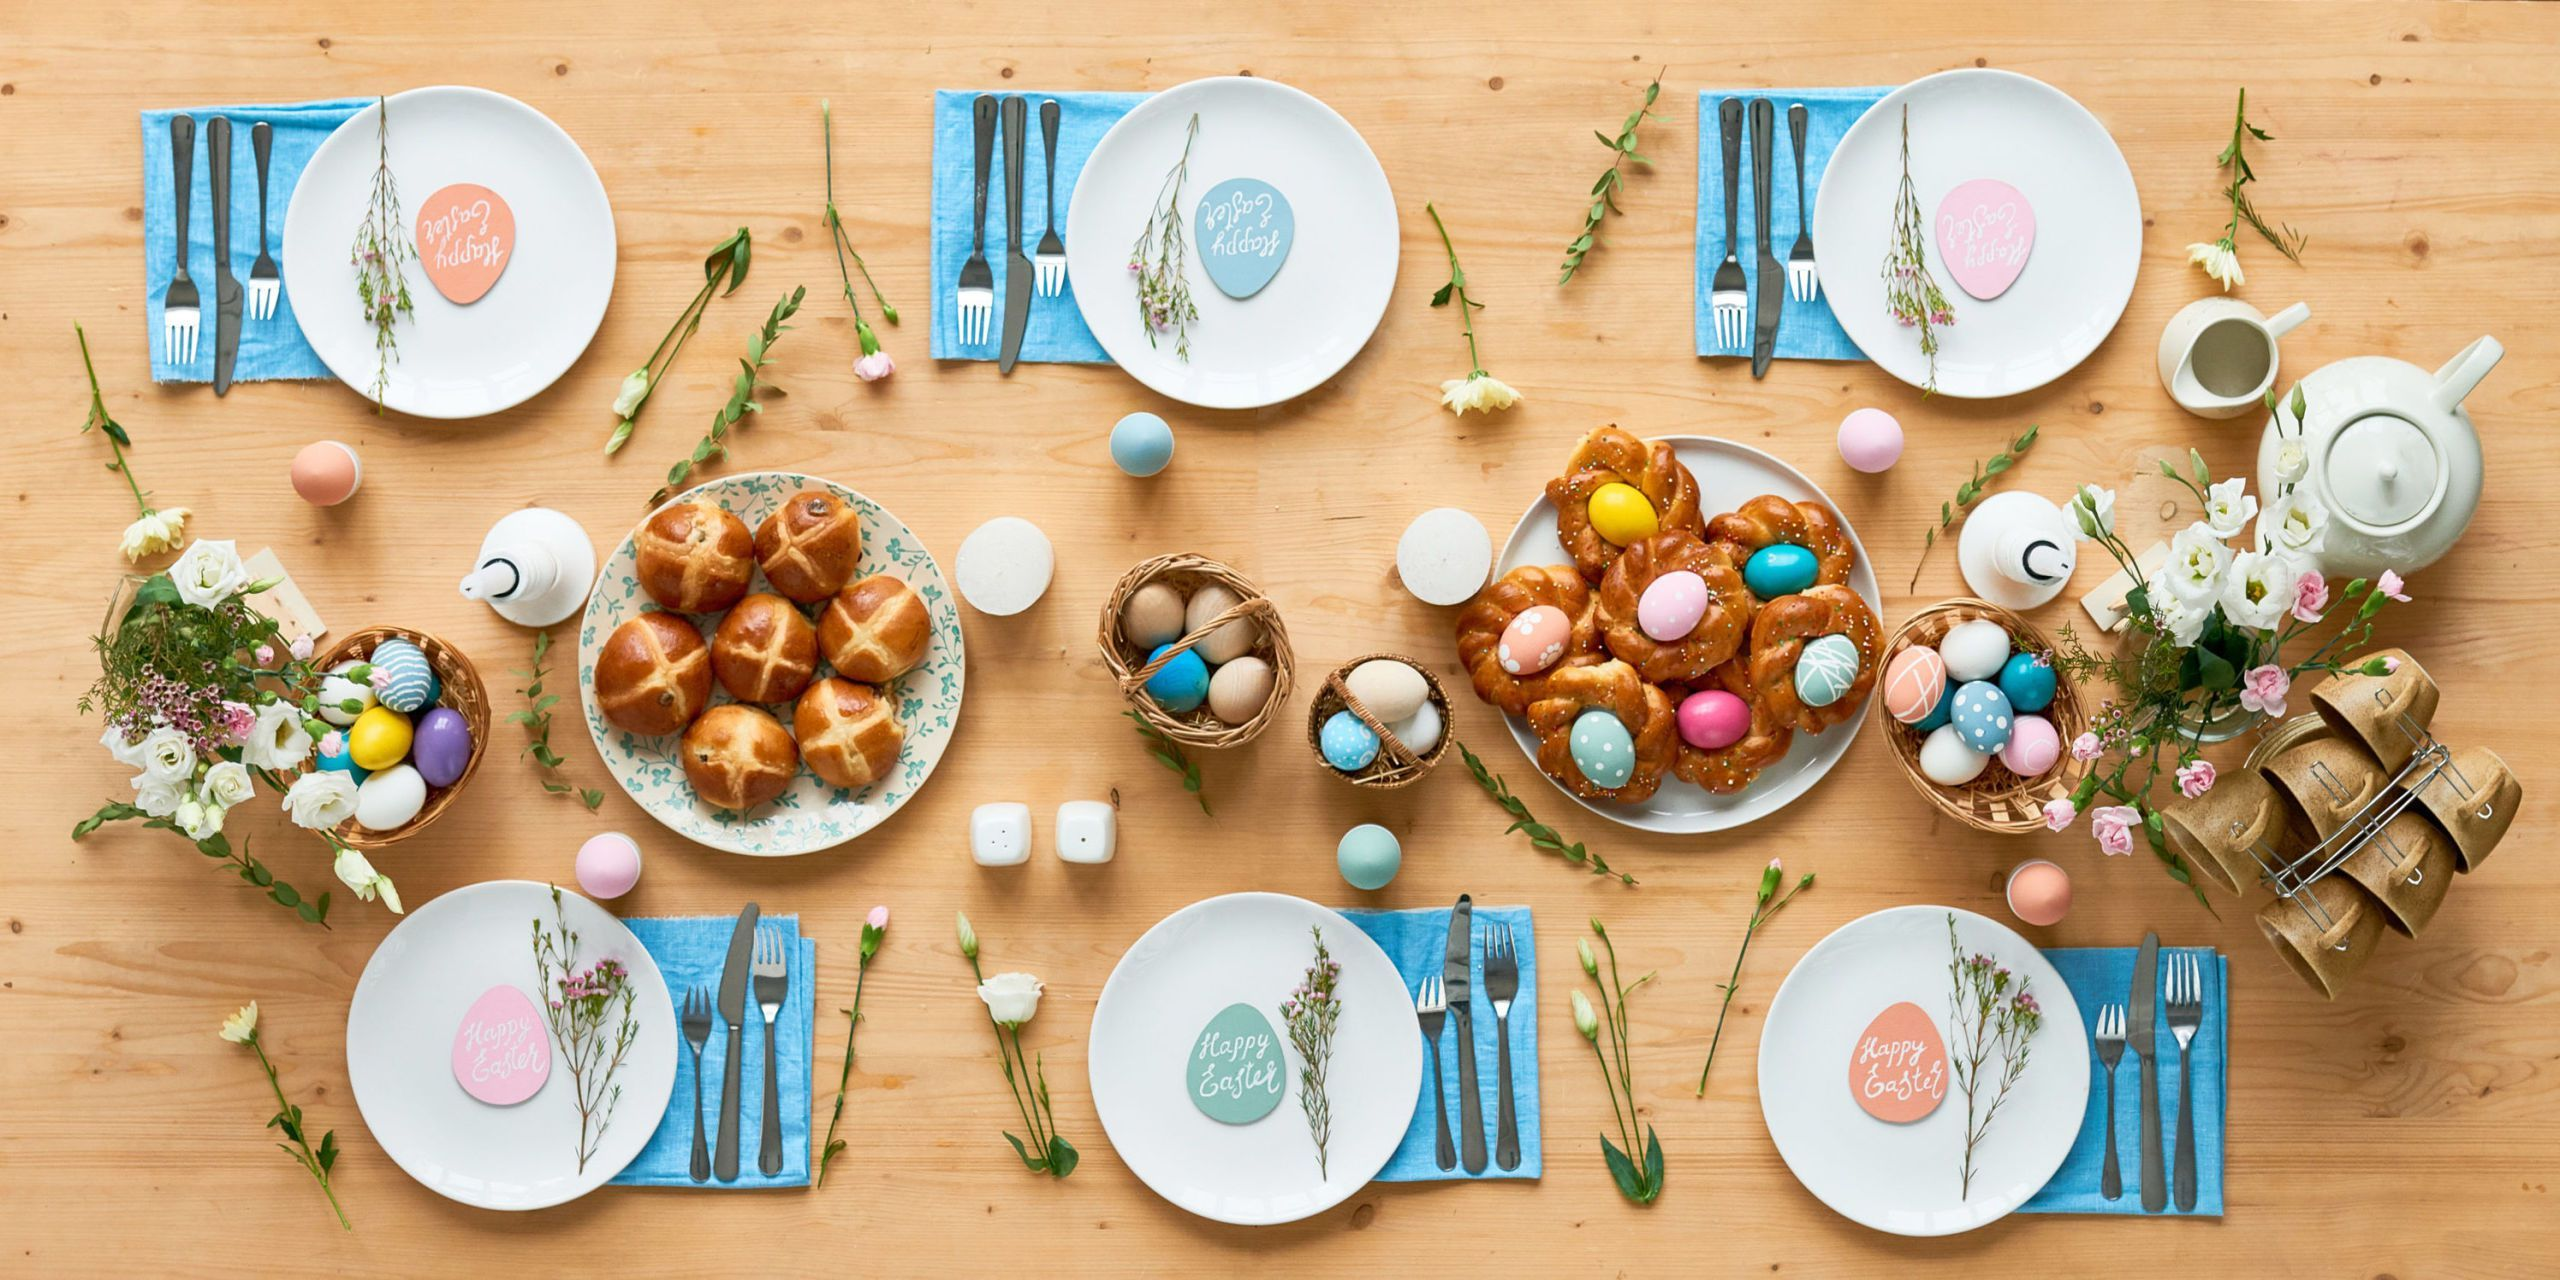 These Restaurants Will Offer Easy Takeout And To Go Meals On Easter Easter Table Settings Easter Table Easter